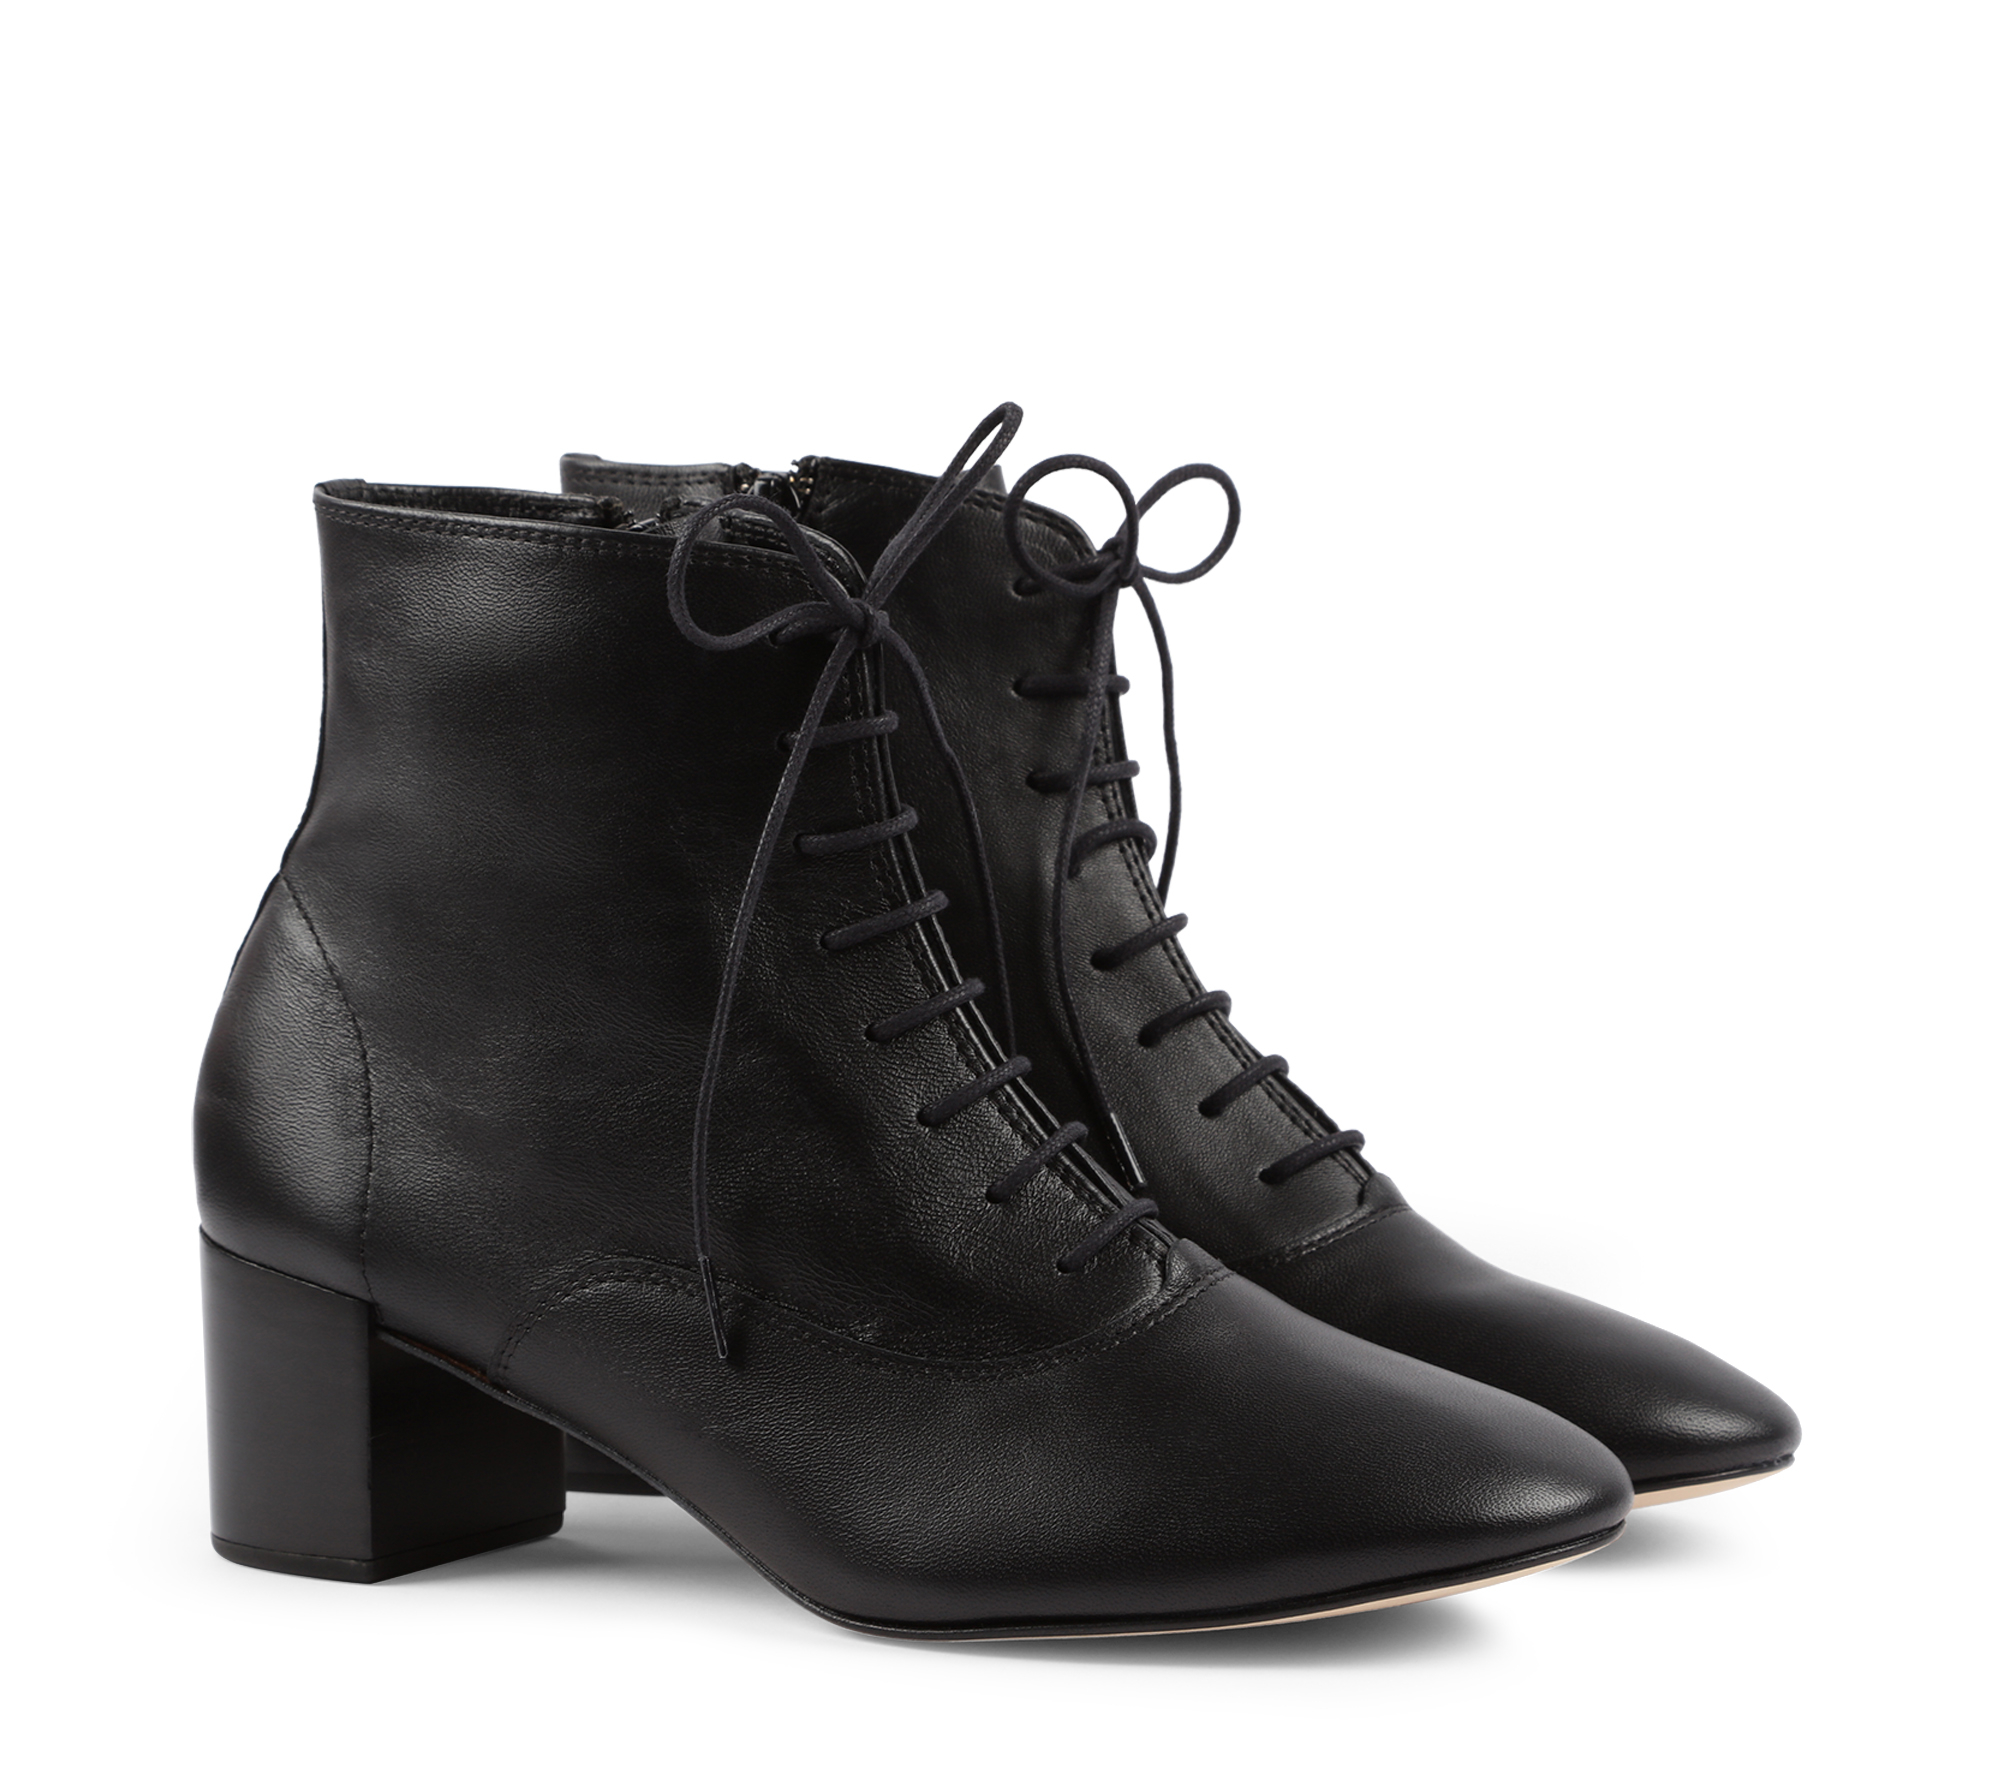 Marvin boots